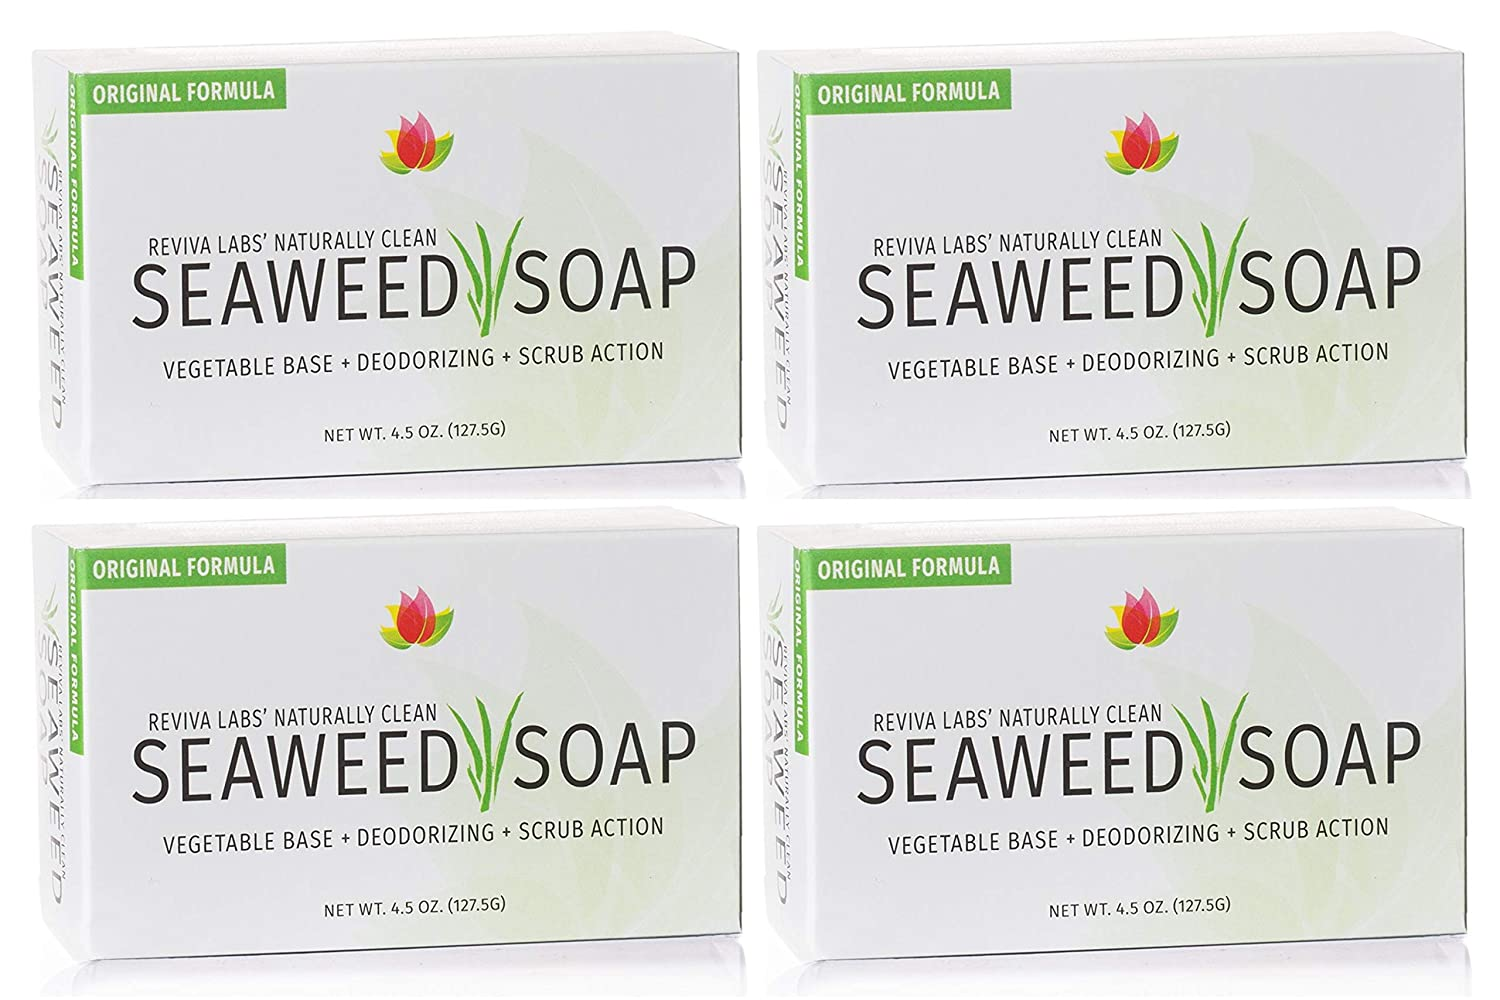 Japan Maker It is very popular New Reviva Seaweed Soap - 4 Pack and Face Scrub Ex Organic